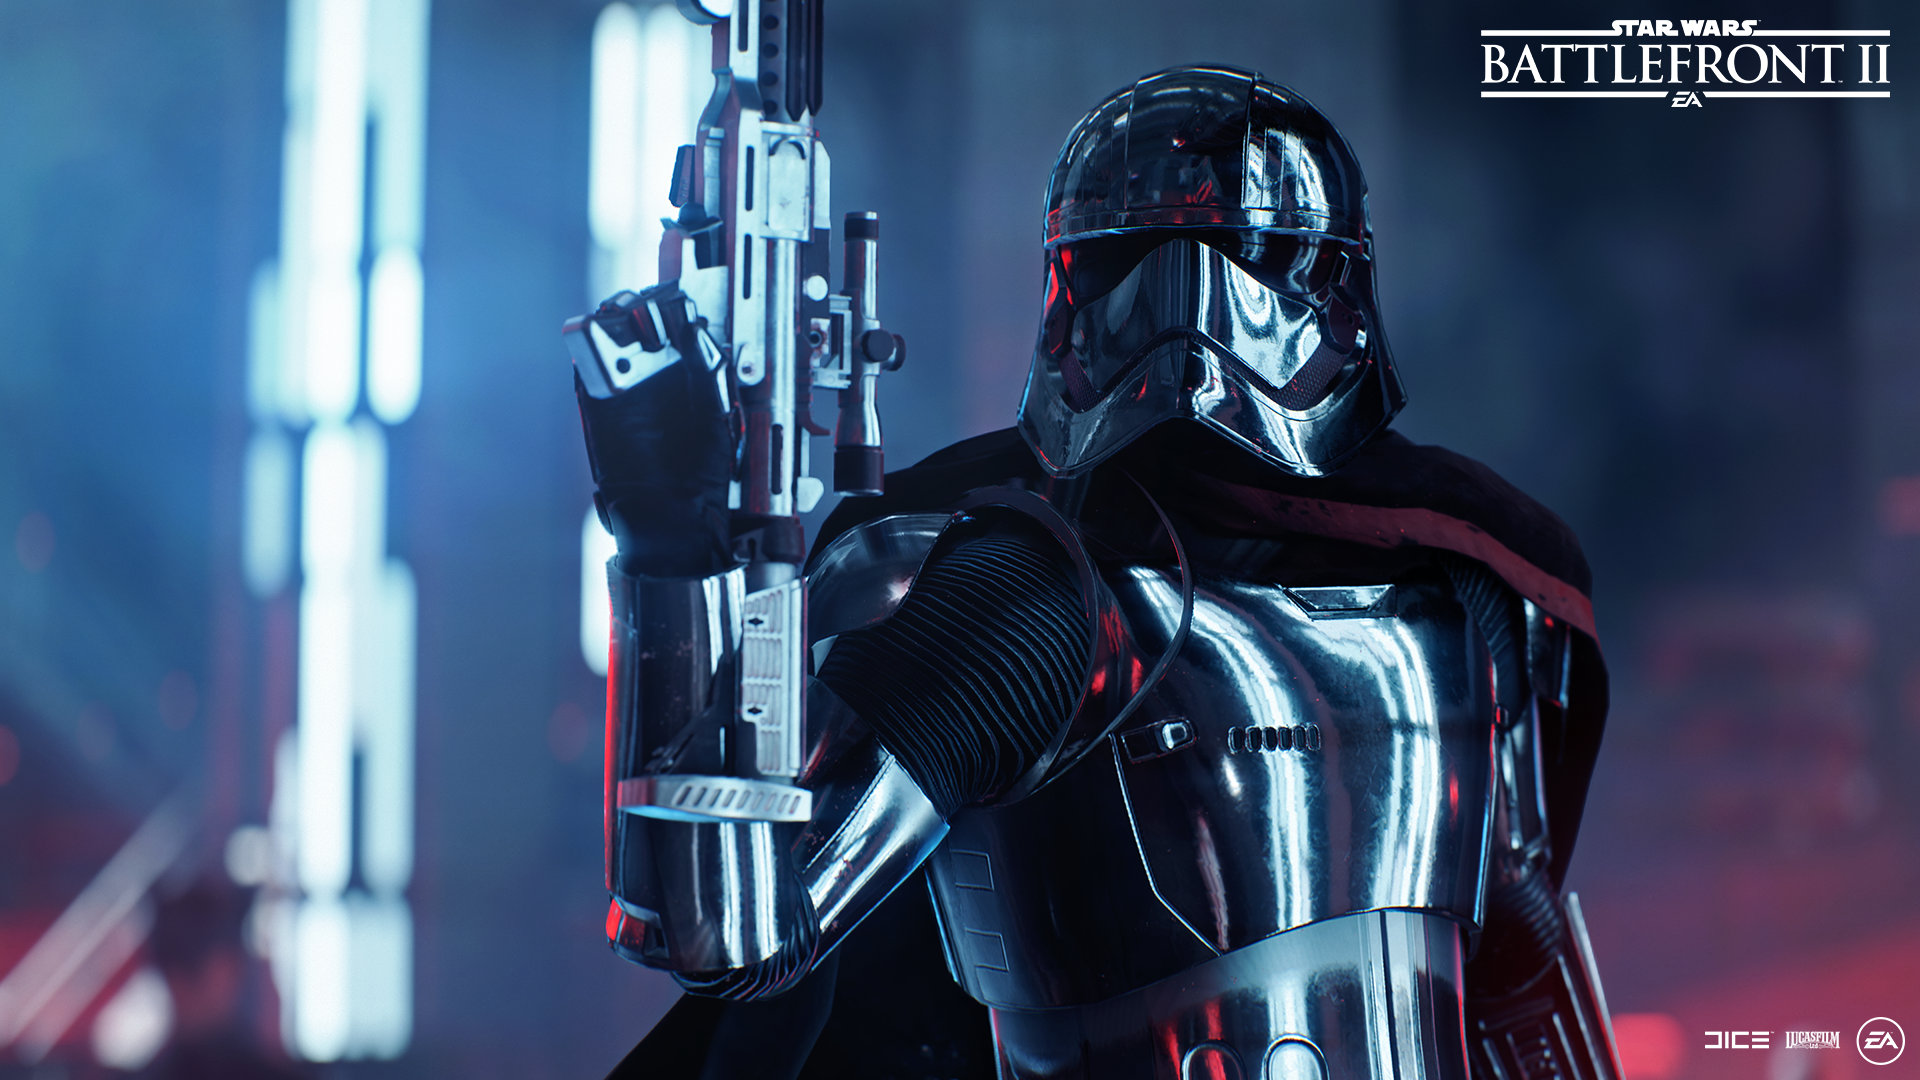 Star Wars Battlefront 2 Update 1 20 Fixes Squads Exploits Patch Notes